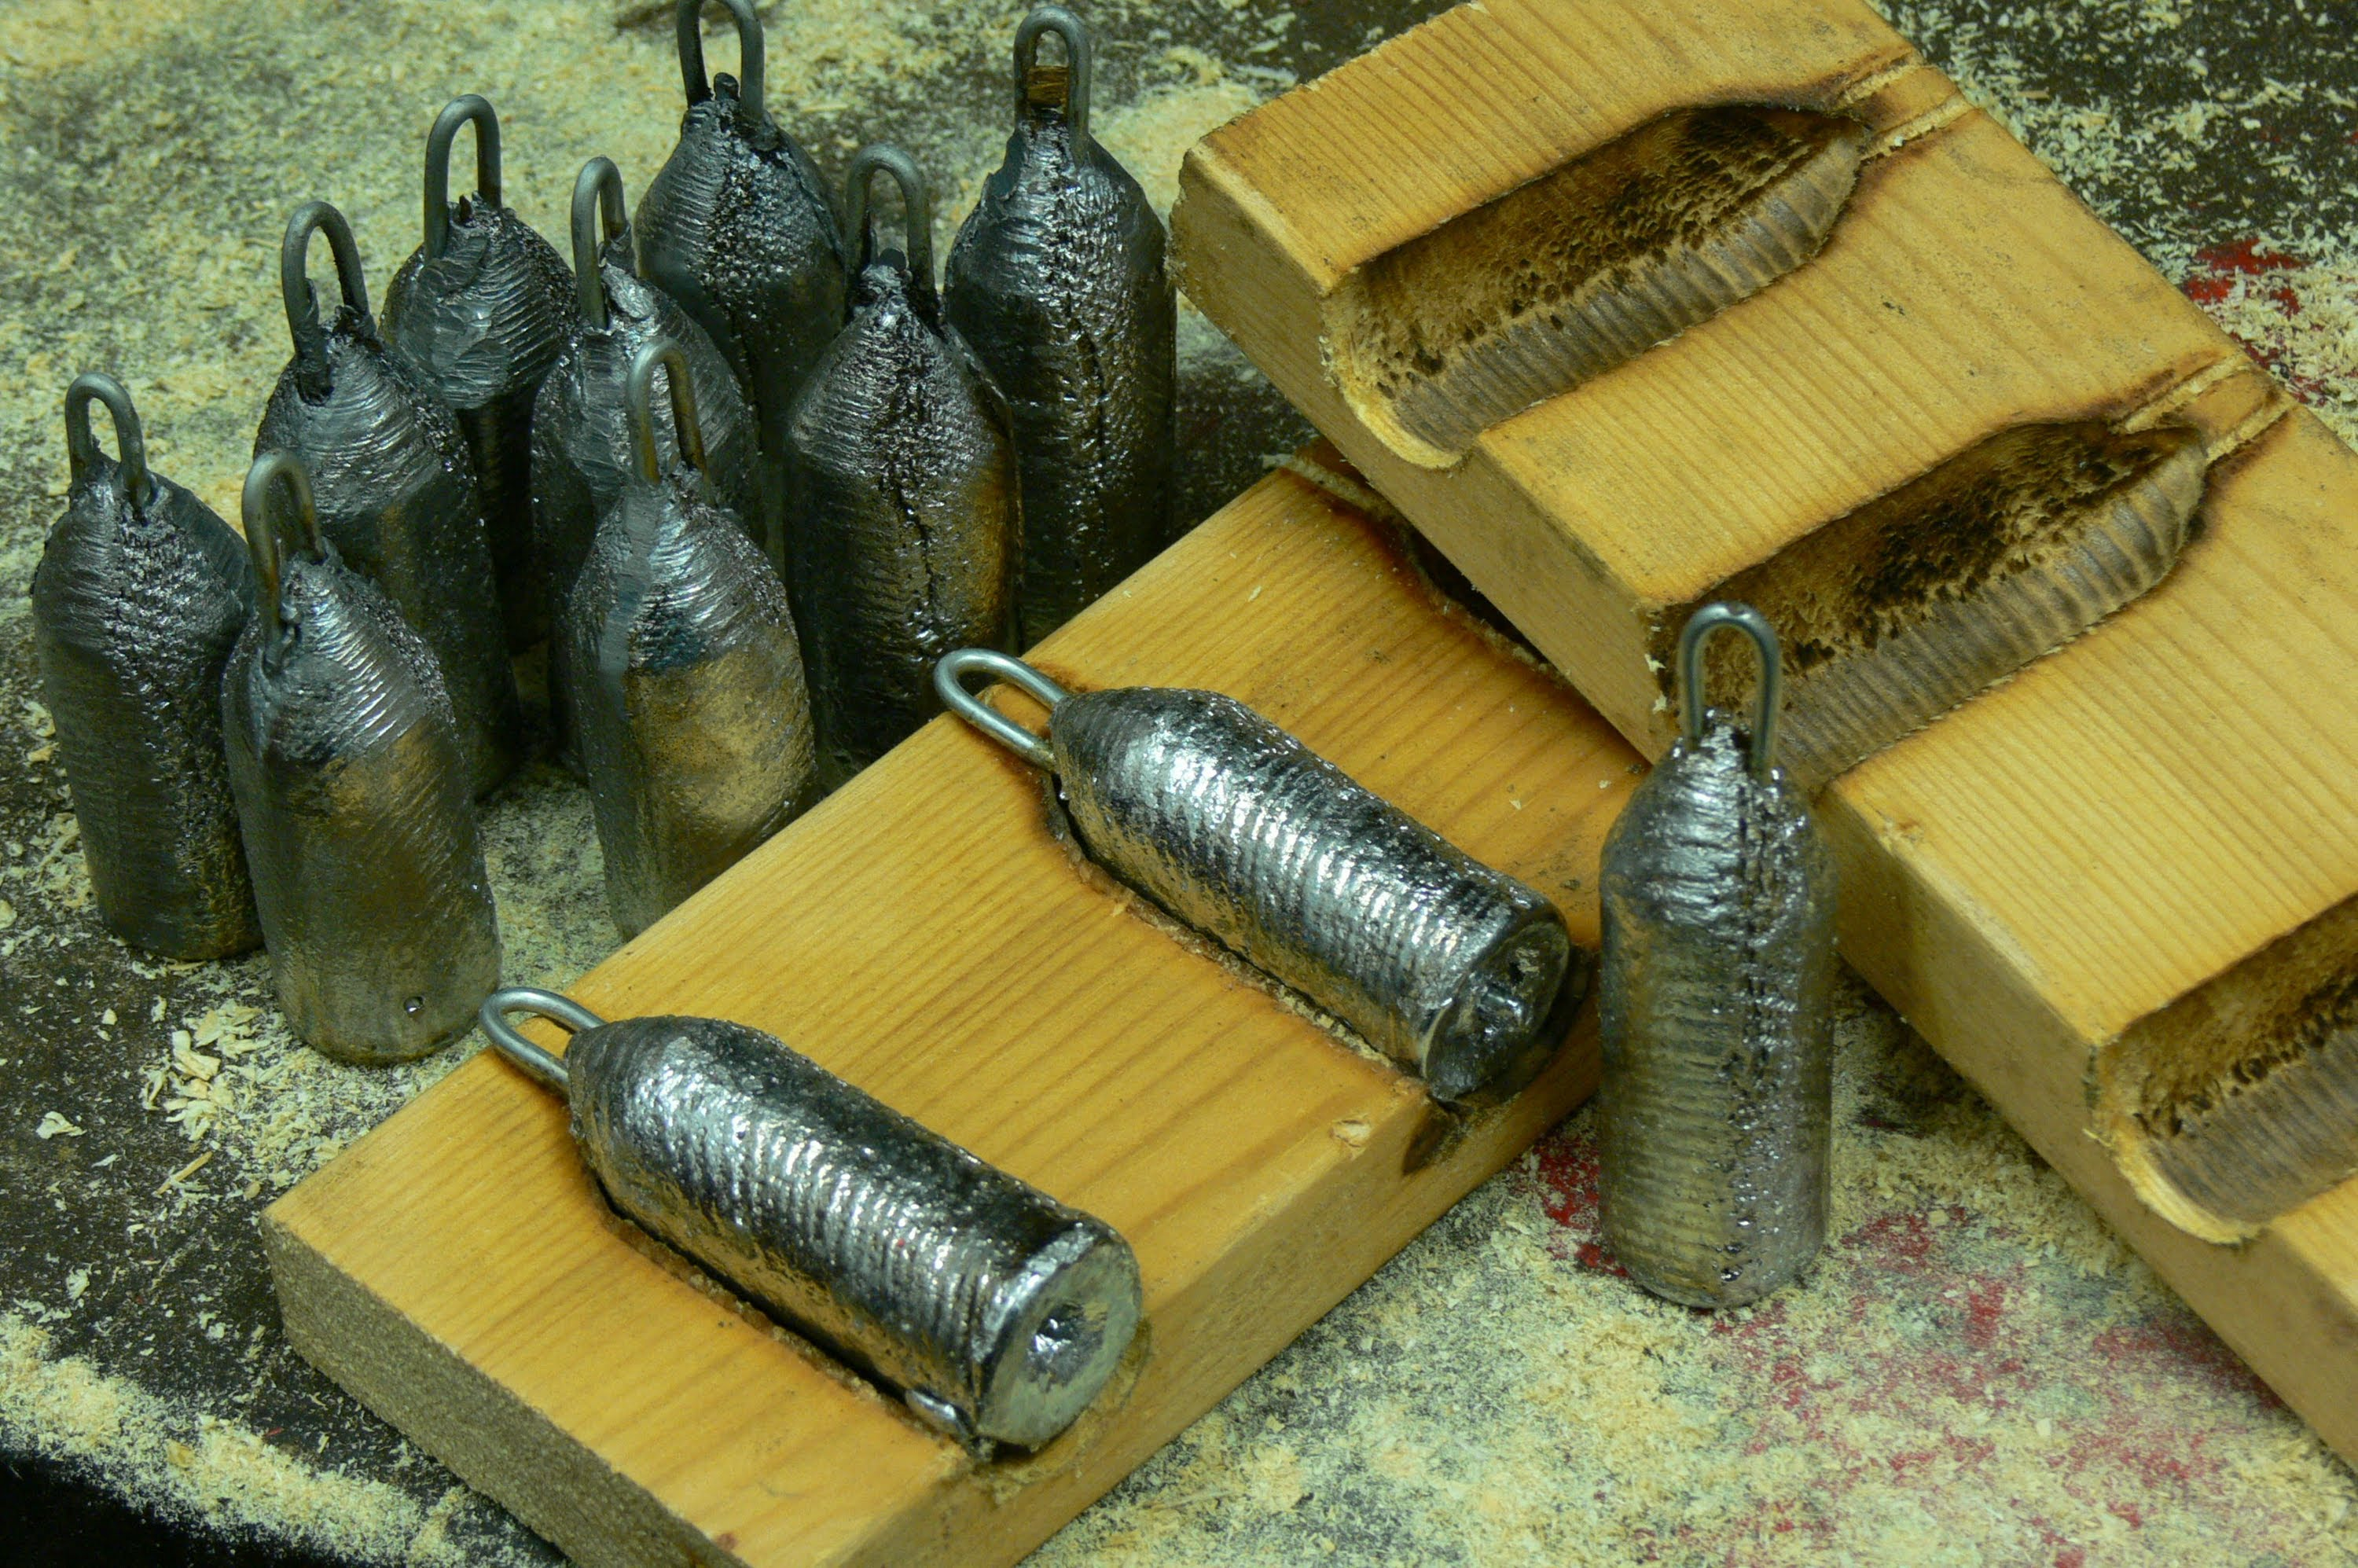 Making lead fishing weights in wooden moulds - Pro Fishing Videos